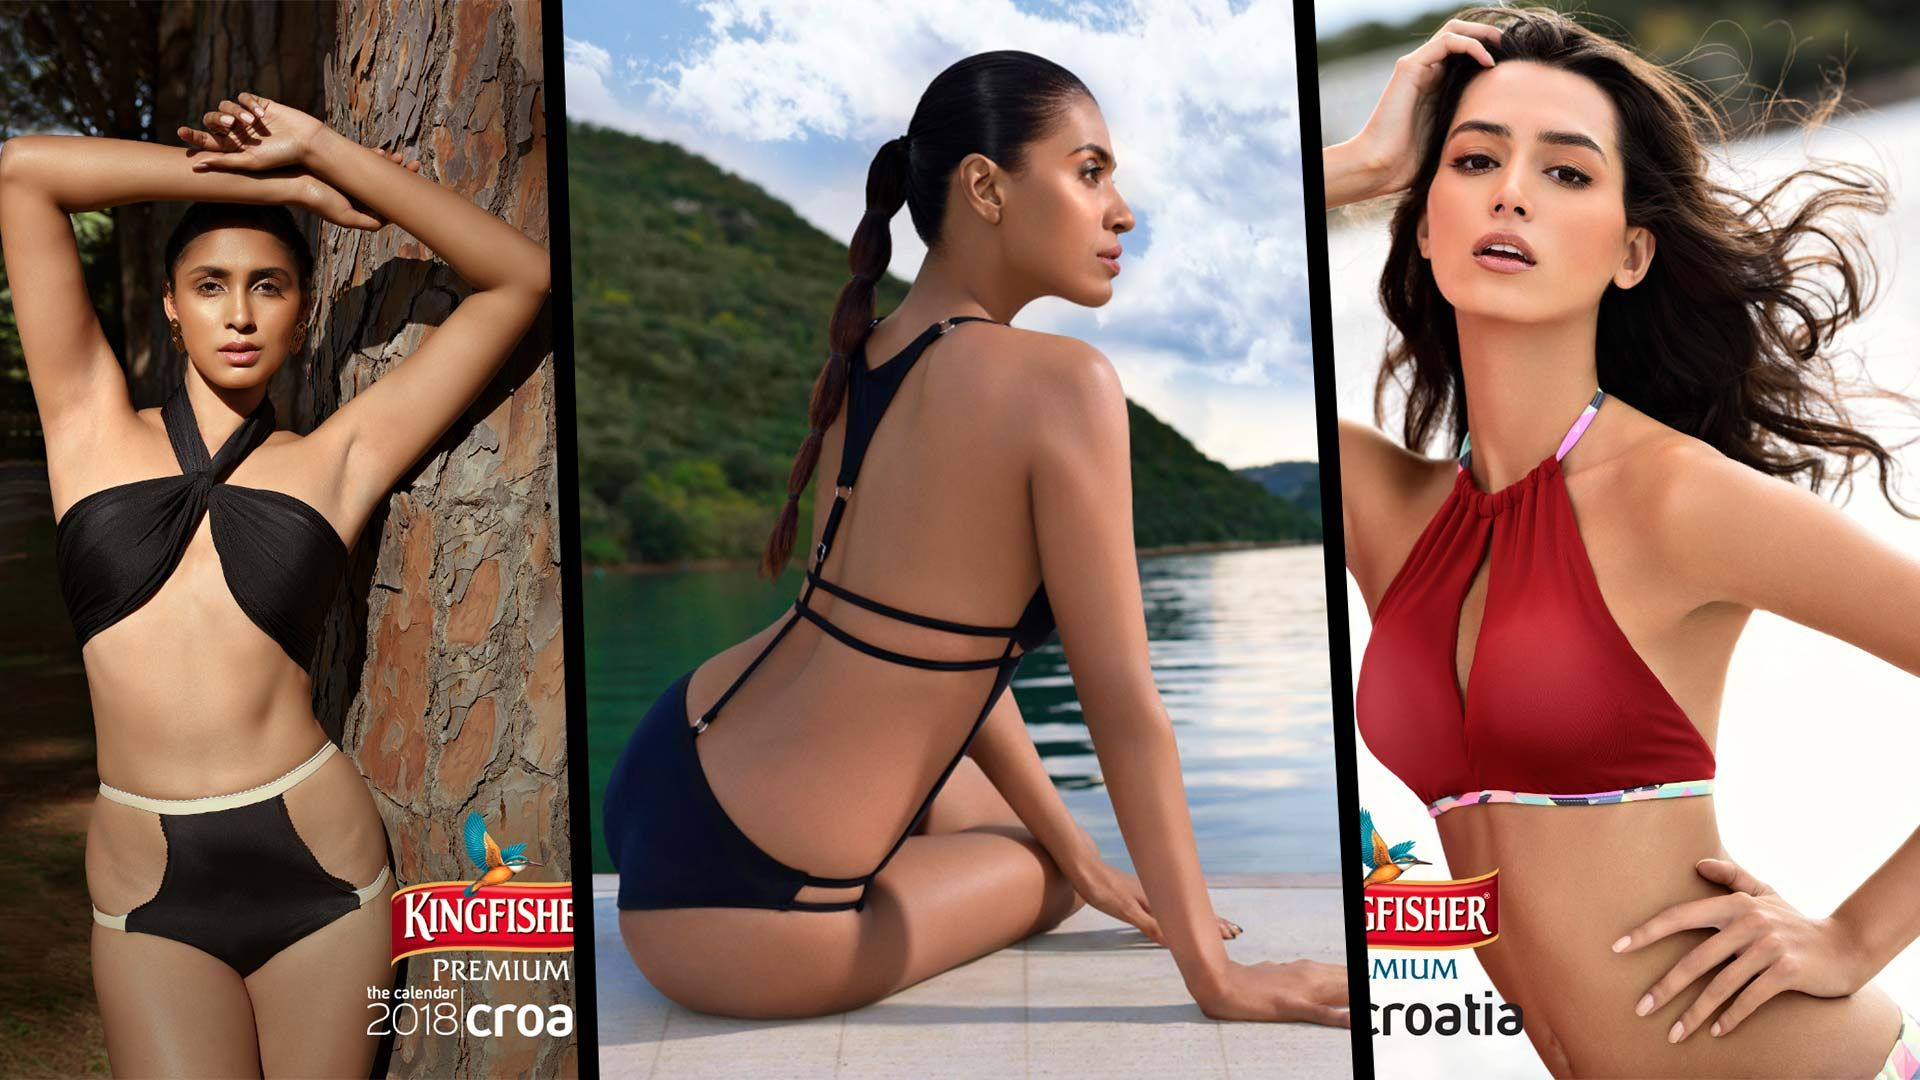 Kingfisher Calendar 2018 From Croatia Hot Photos Of Kingfisher